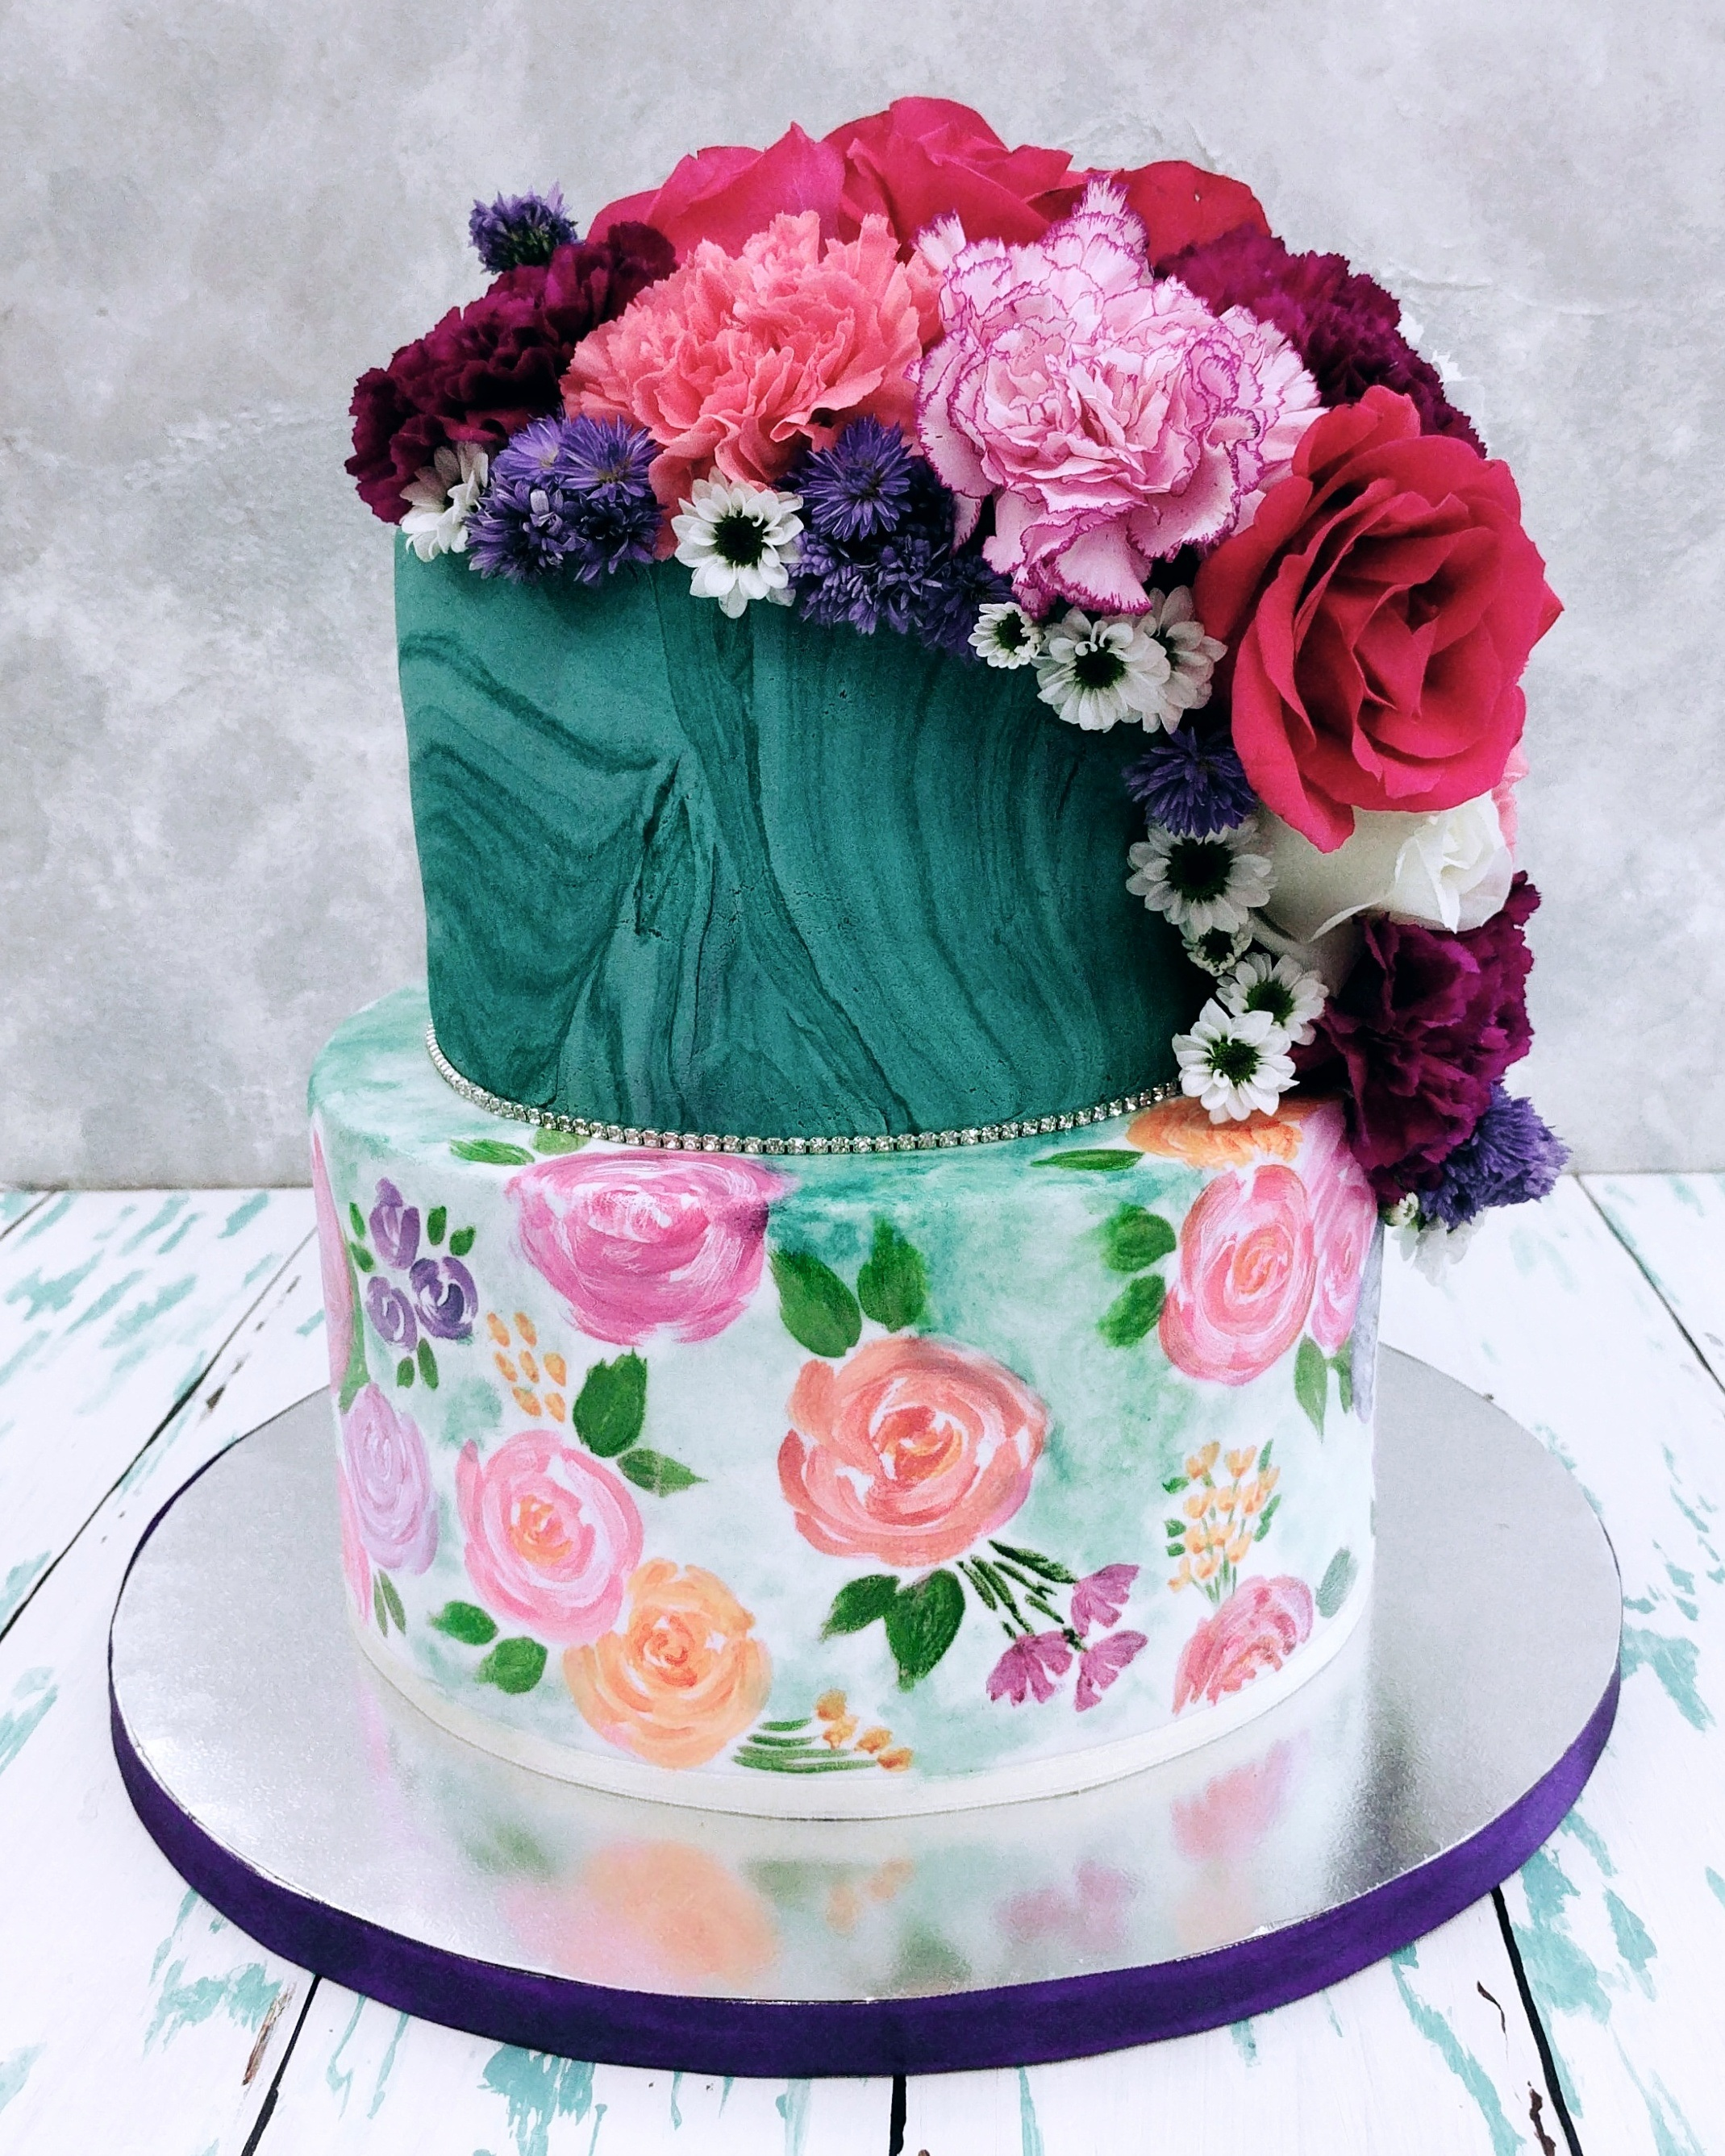 Teal with hand handprinted pink flowers and sugar flowers